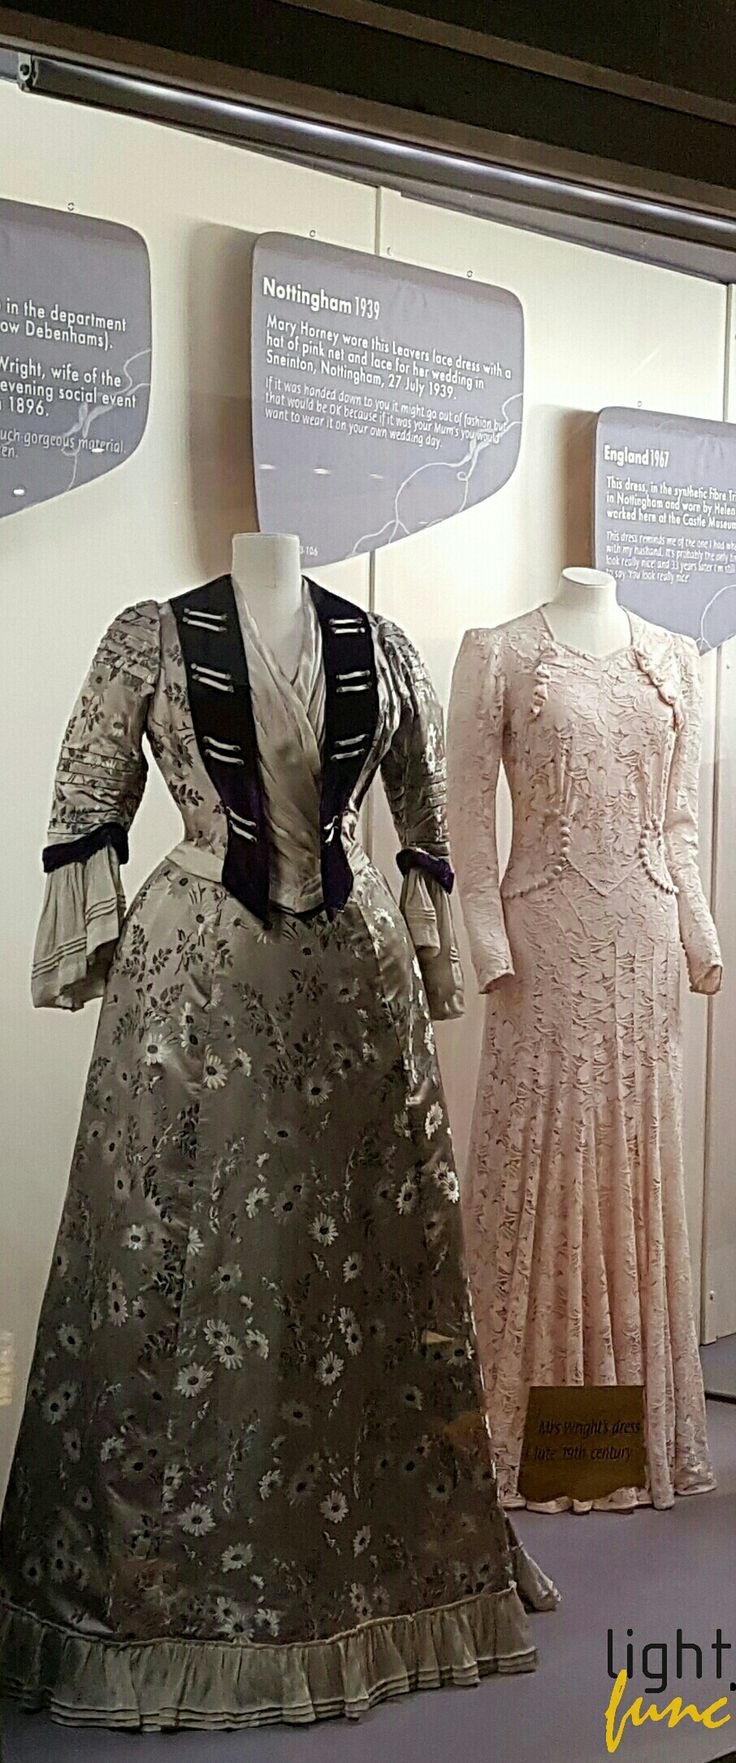 Another great find 👏👌. 1930's wedding dresses 💖💝💘❤. #lightfunc #lightfuncscapade #fashion #history #art #creativity #beautiful #museum